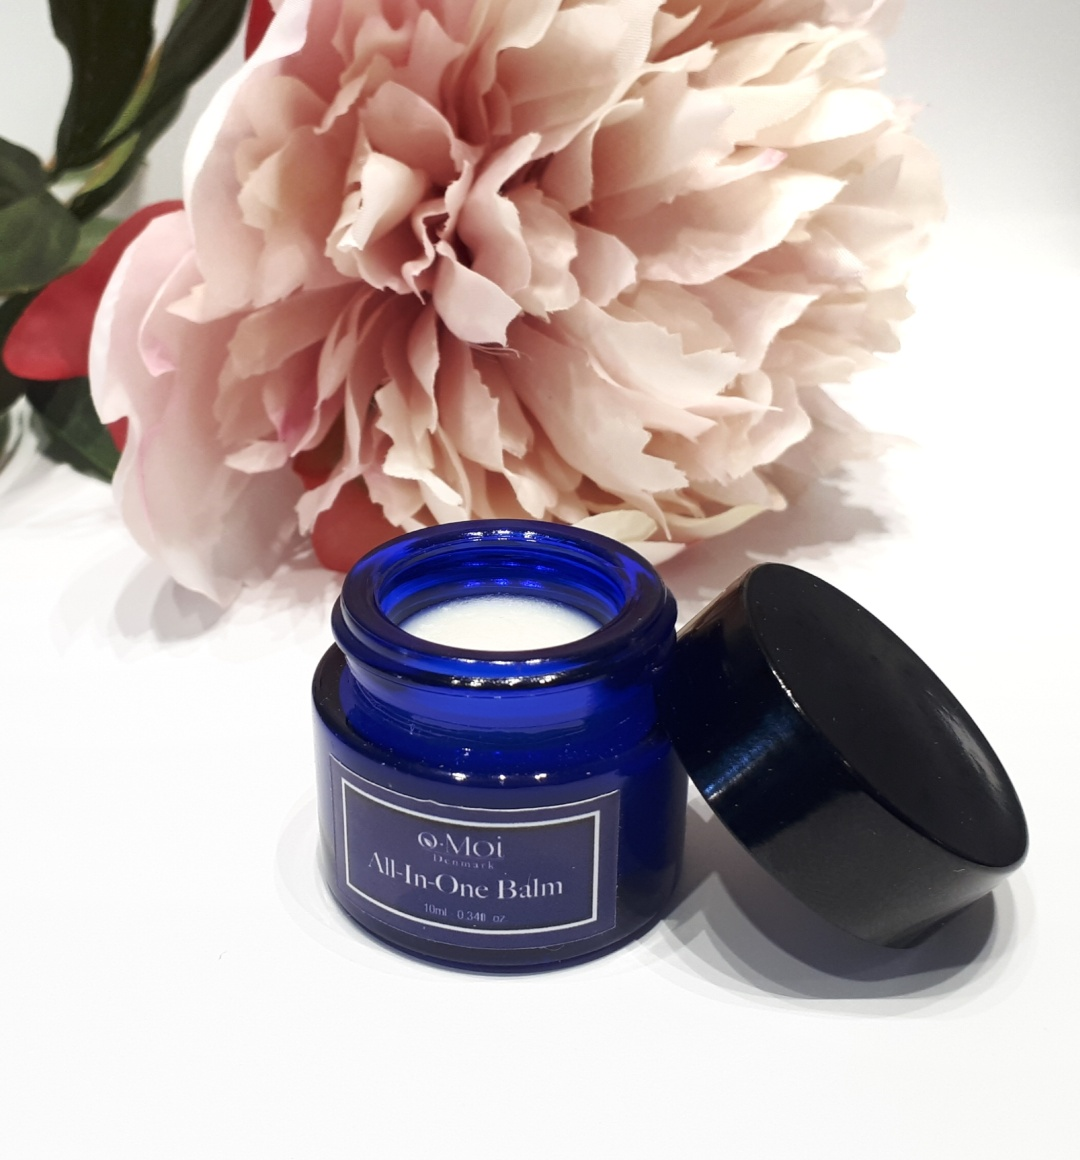 A small blue jar with a dark blue label stands on a white background in front of a pink flower. The lid is leaning up against the jar so the white balm inside is exposed.